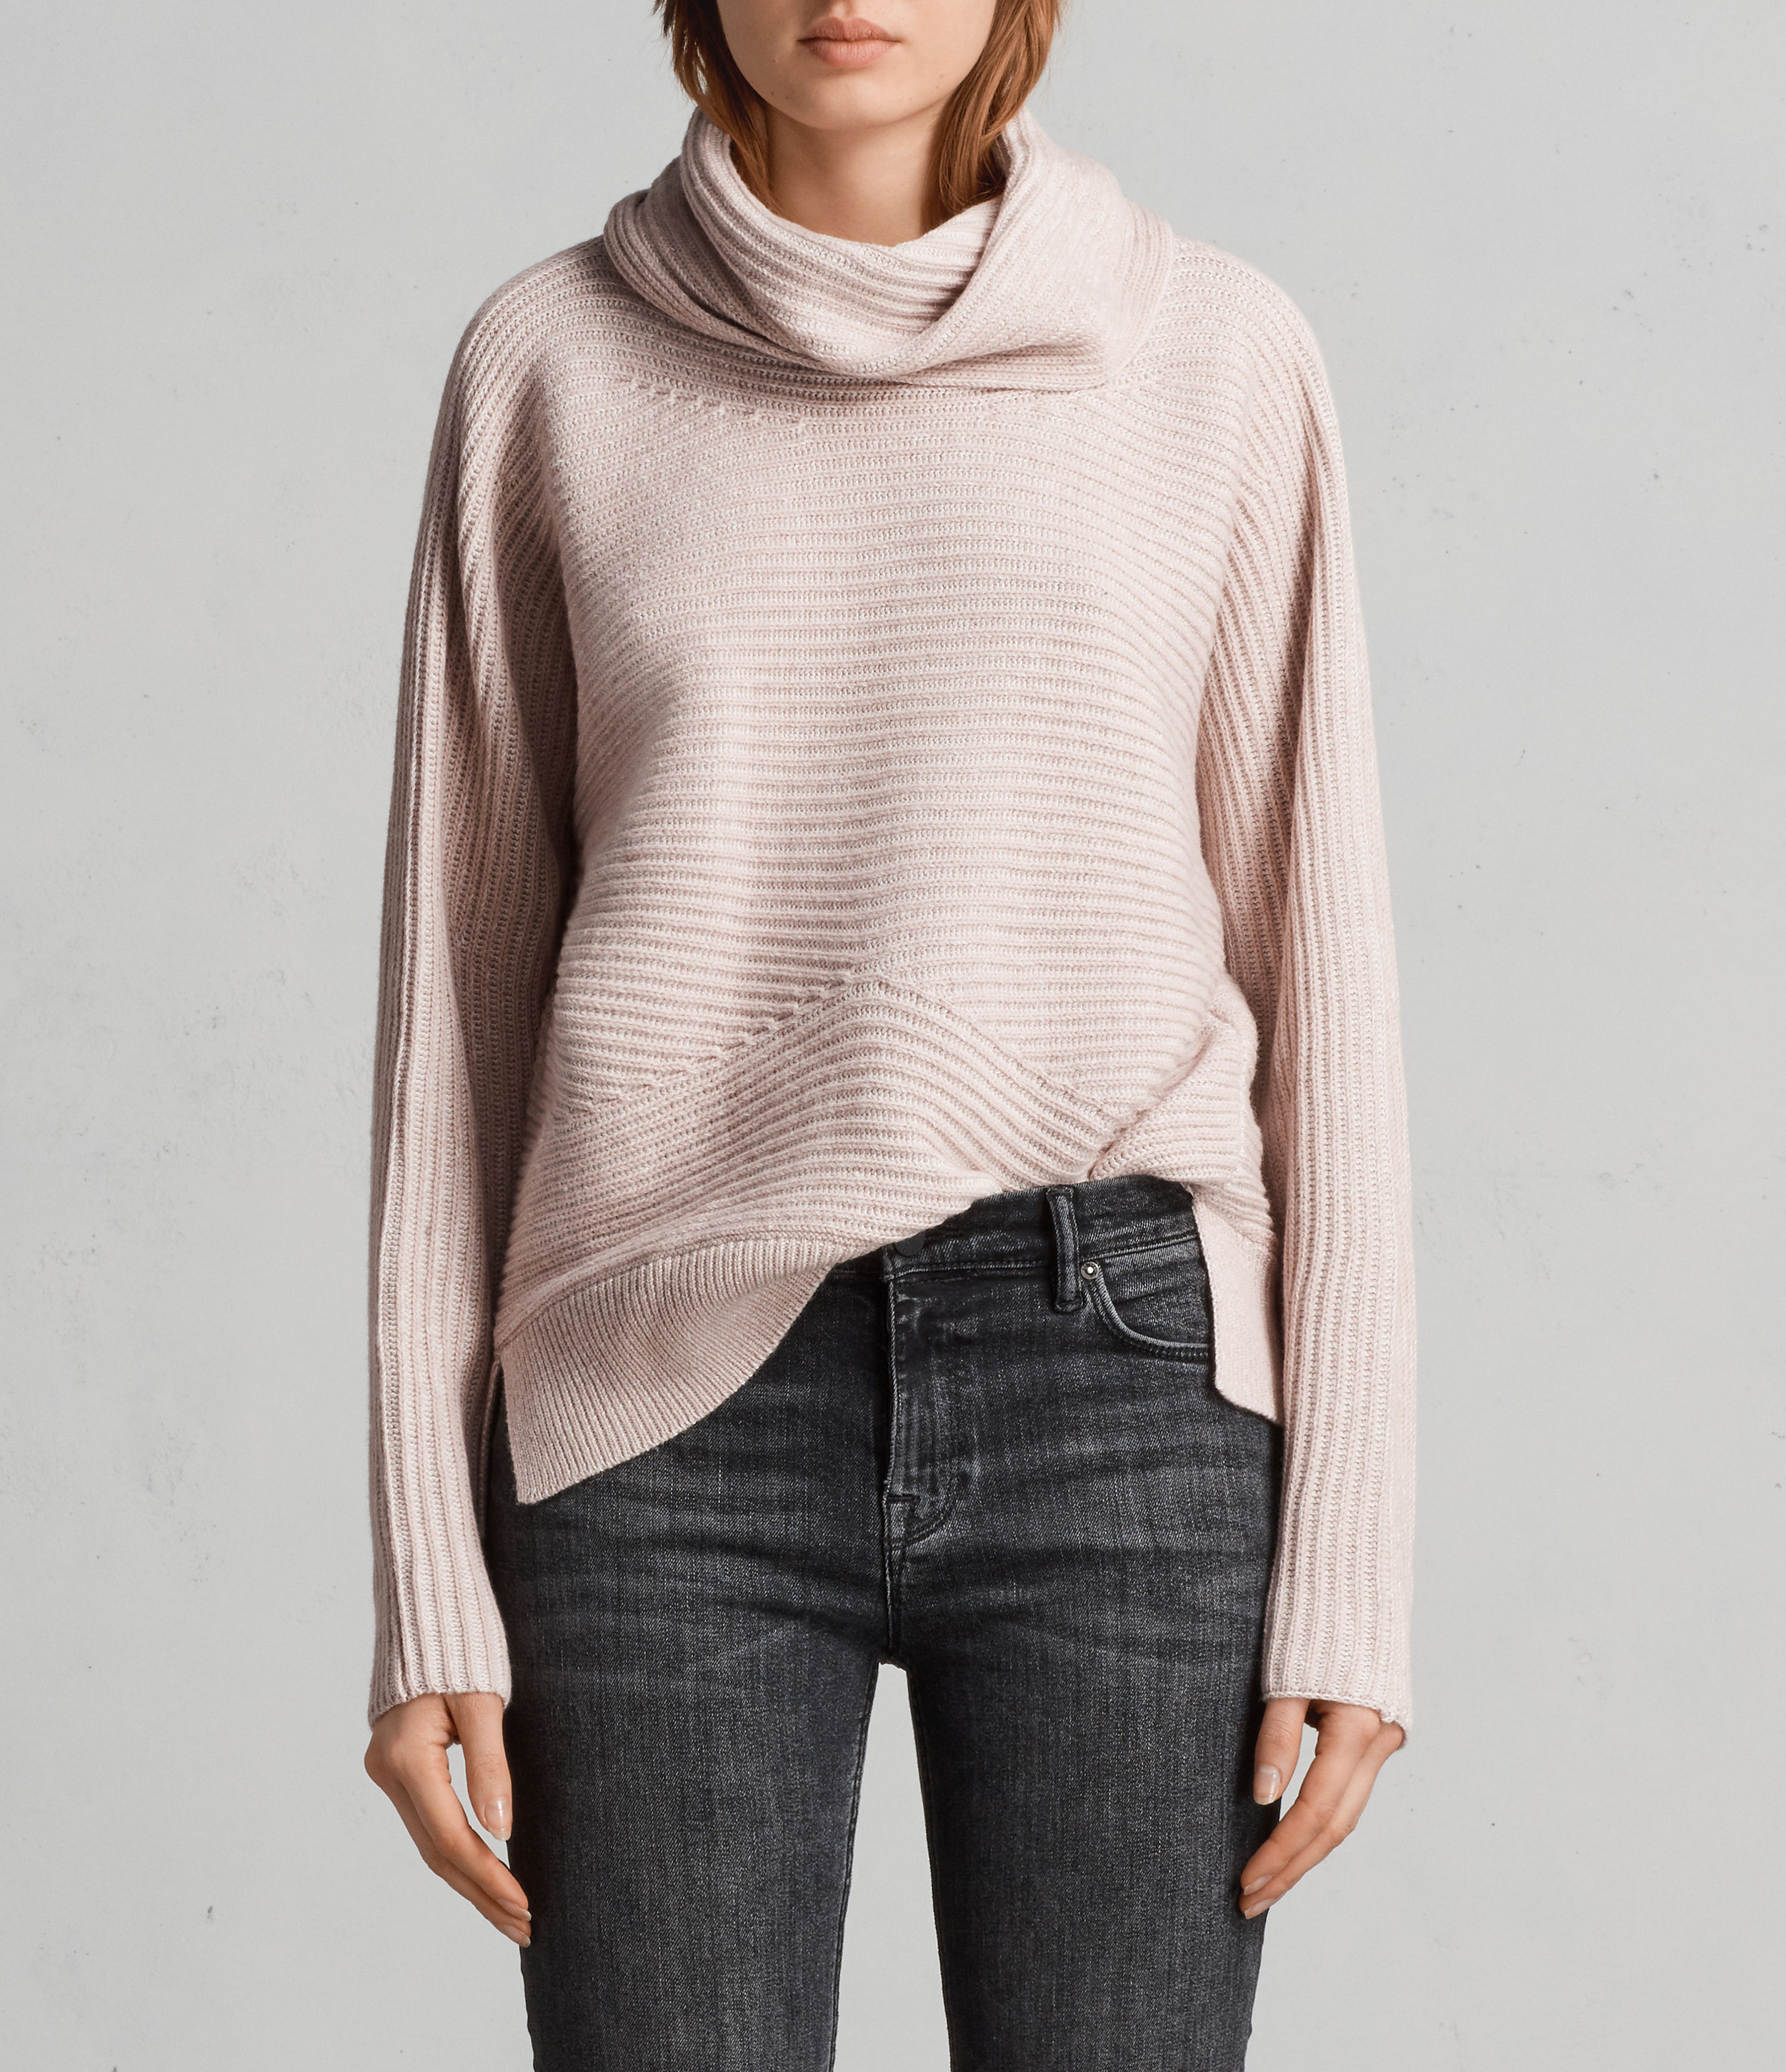 All Saints Mesa Sweater in pink